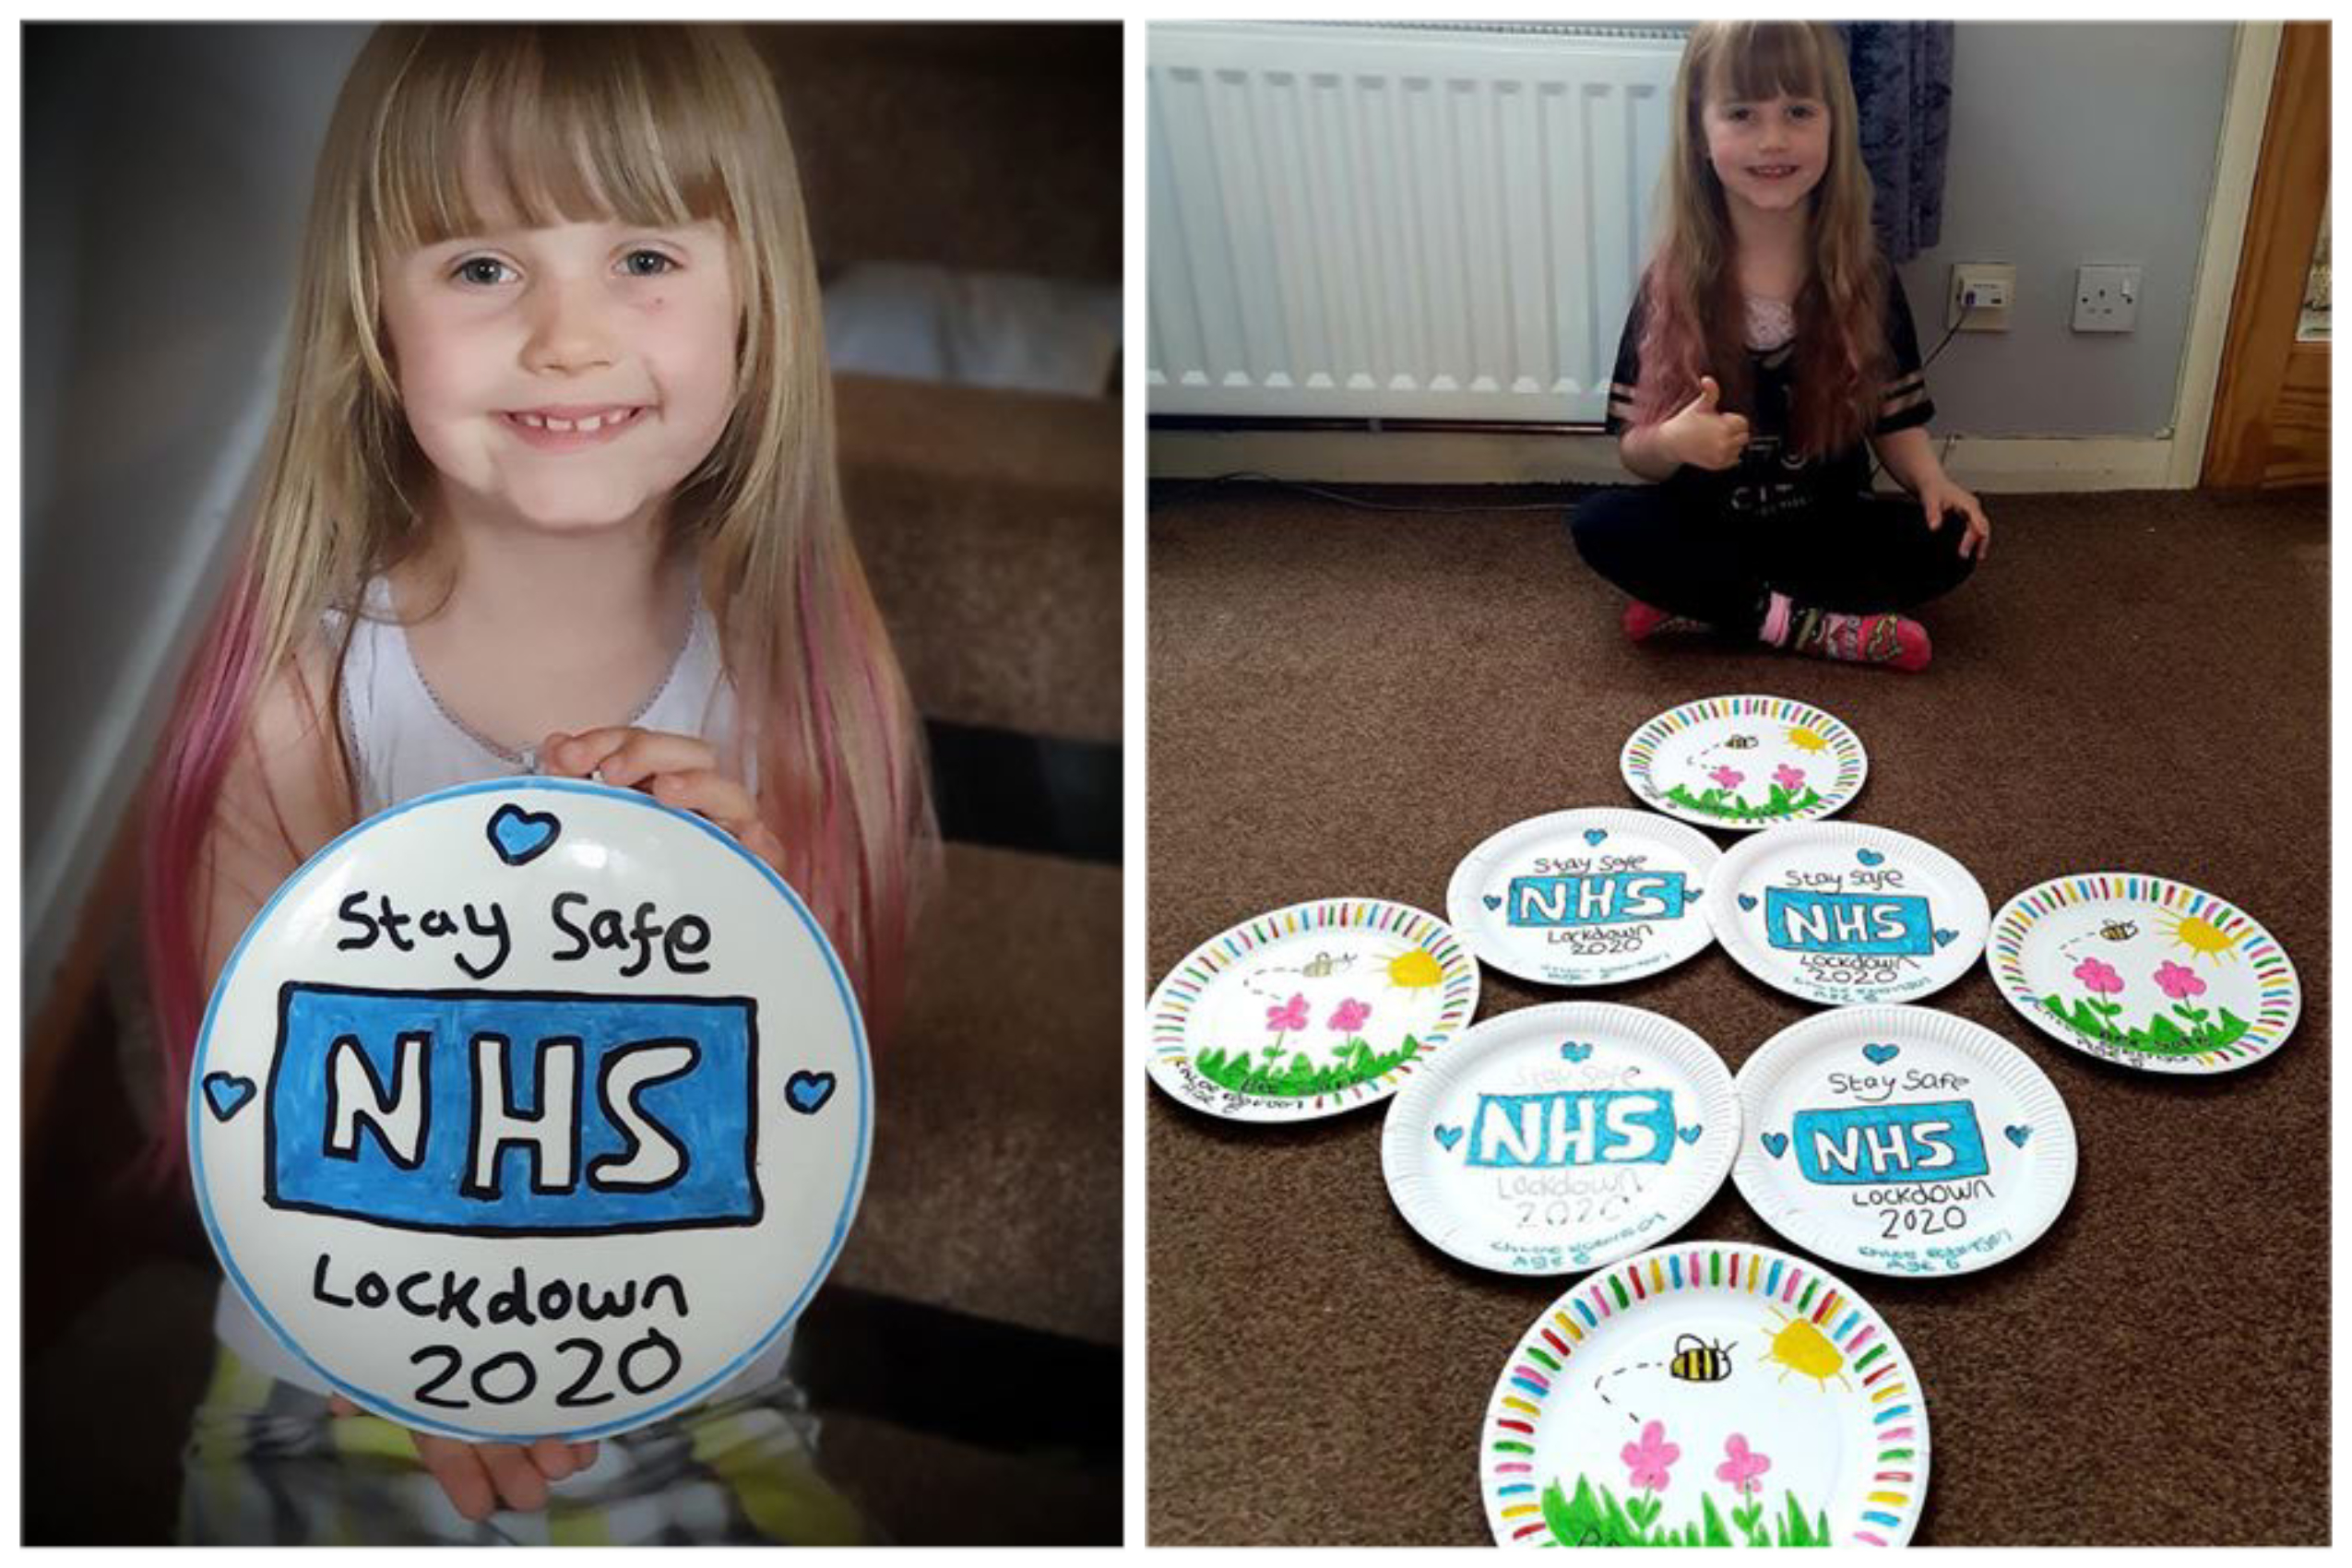 Chloe Robinson is creating colourful plates to raise funds for the NHS.